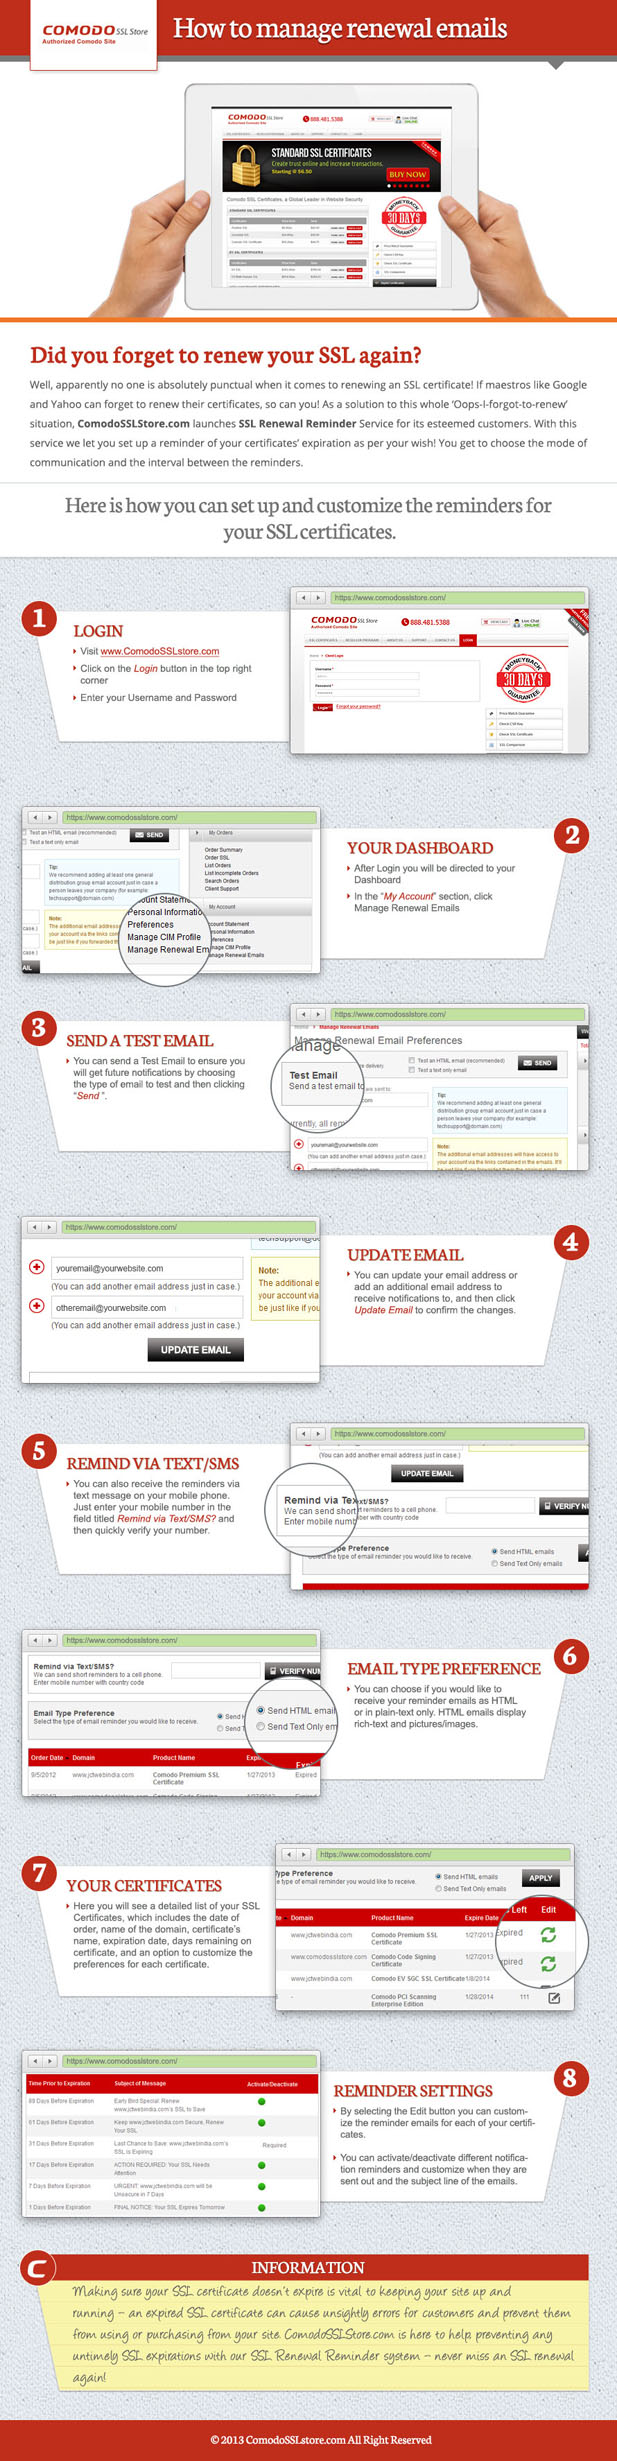 Infographic: How to Manage Renewal Email